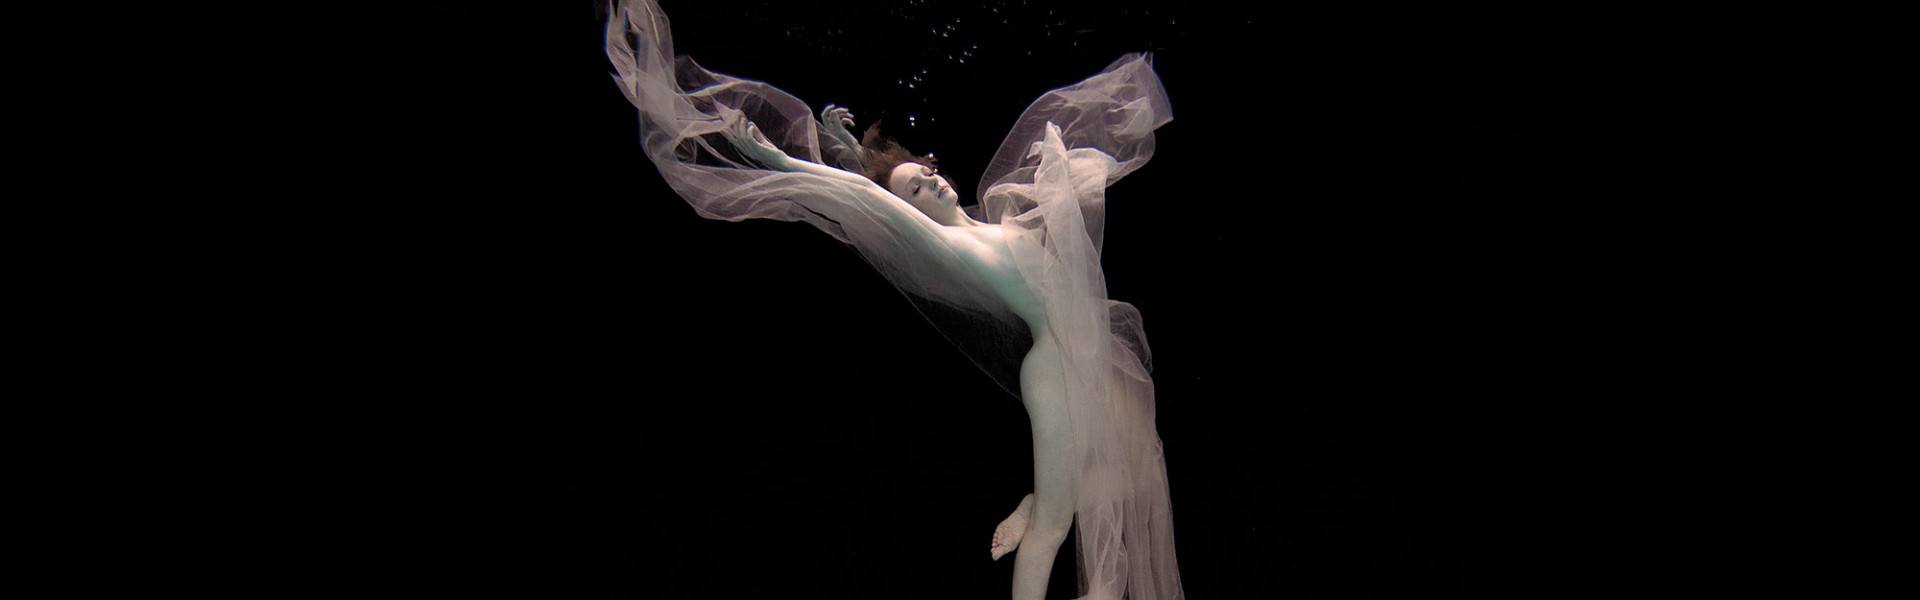 Model Ivory Flame Underwater by photographer Christopher Meredith